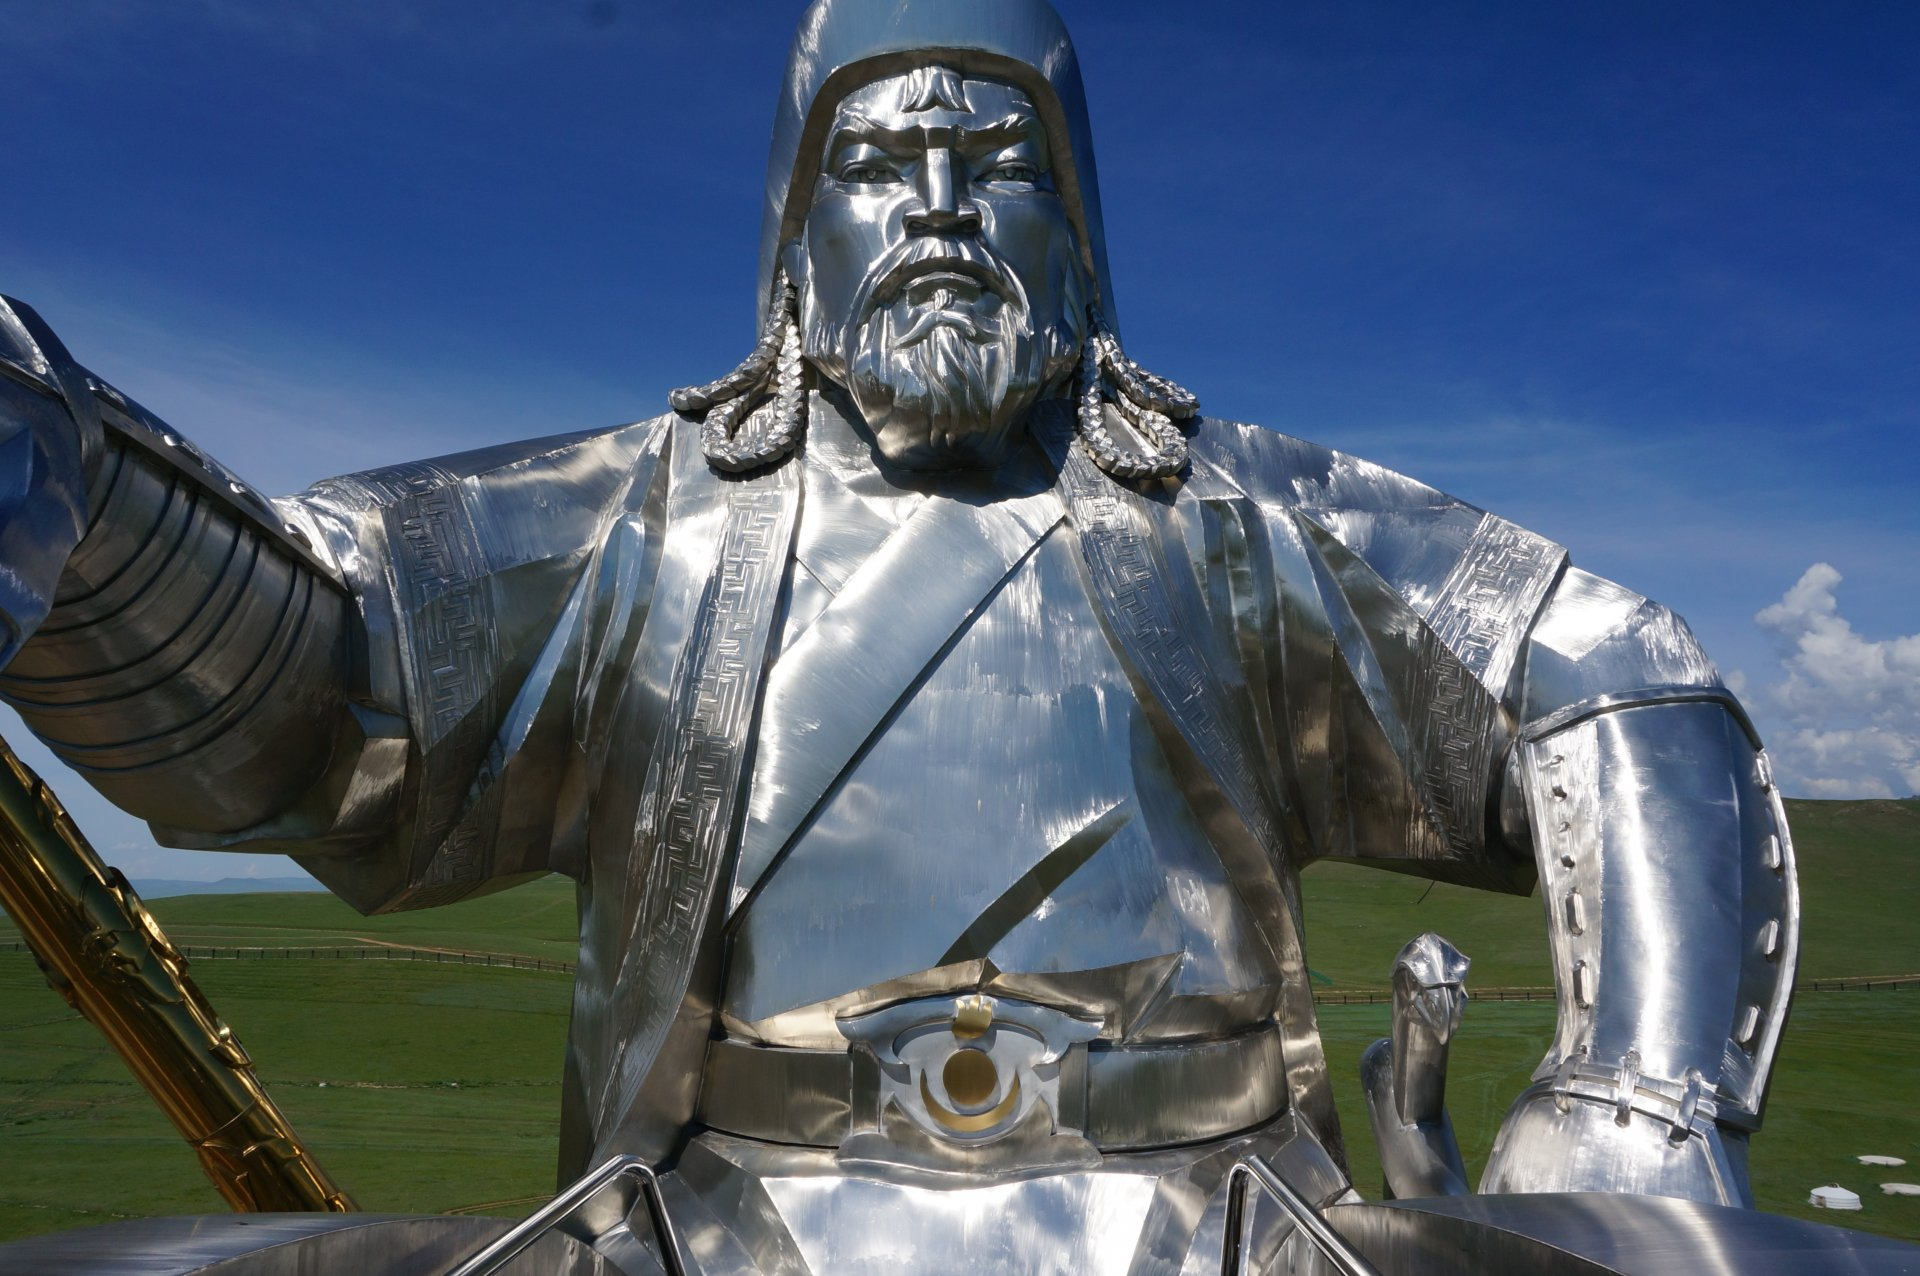 Genghis Khan, great visionary?